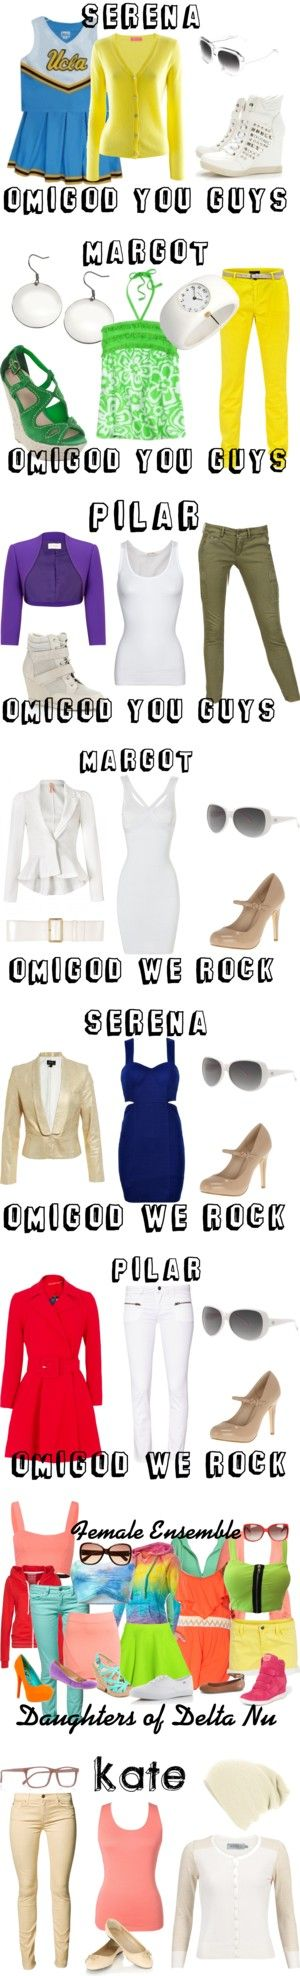 Legally Blonde Costumes: The Girls of Delta Nu by camposj on Polyvore featuring…